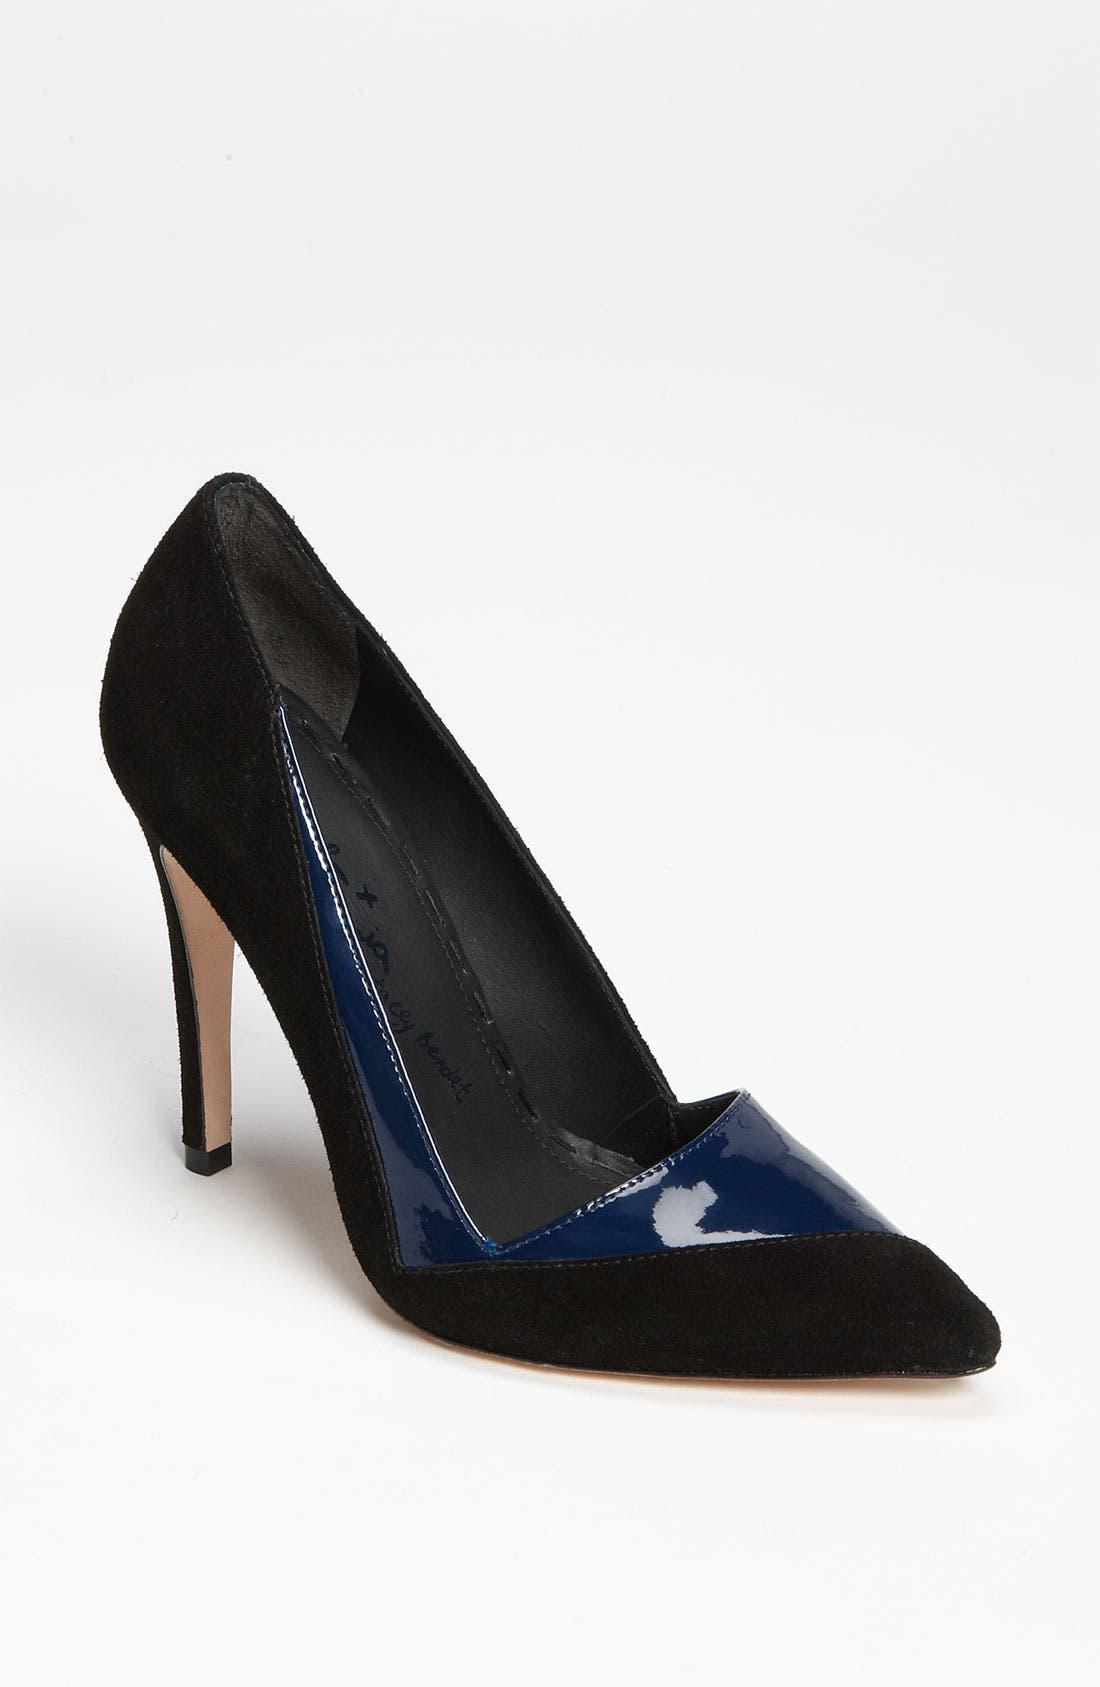 Alternate Image 1 Selected - Alice + Olivia 'Deon' Pump